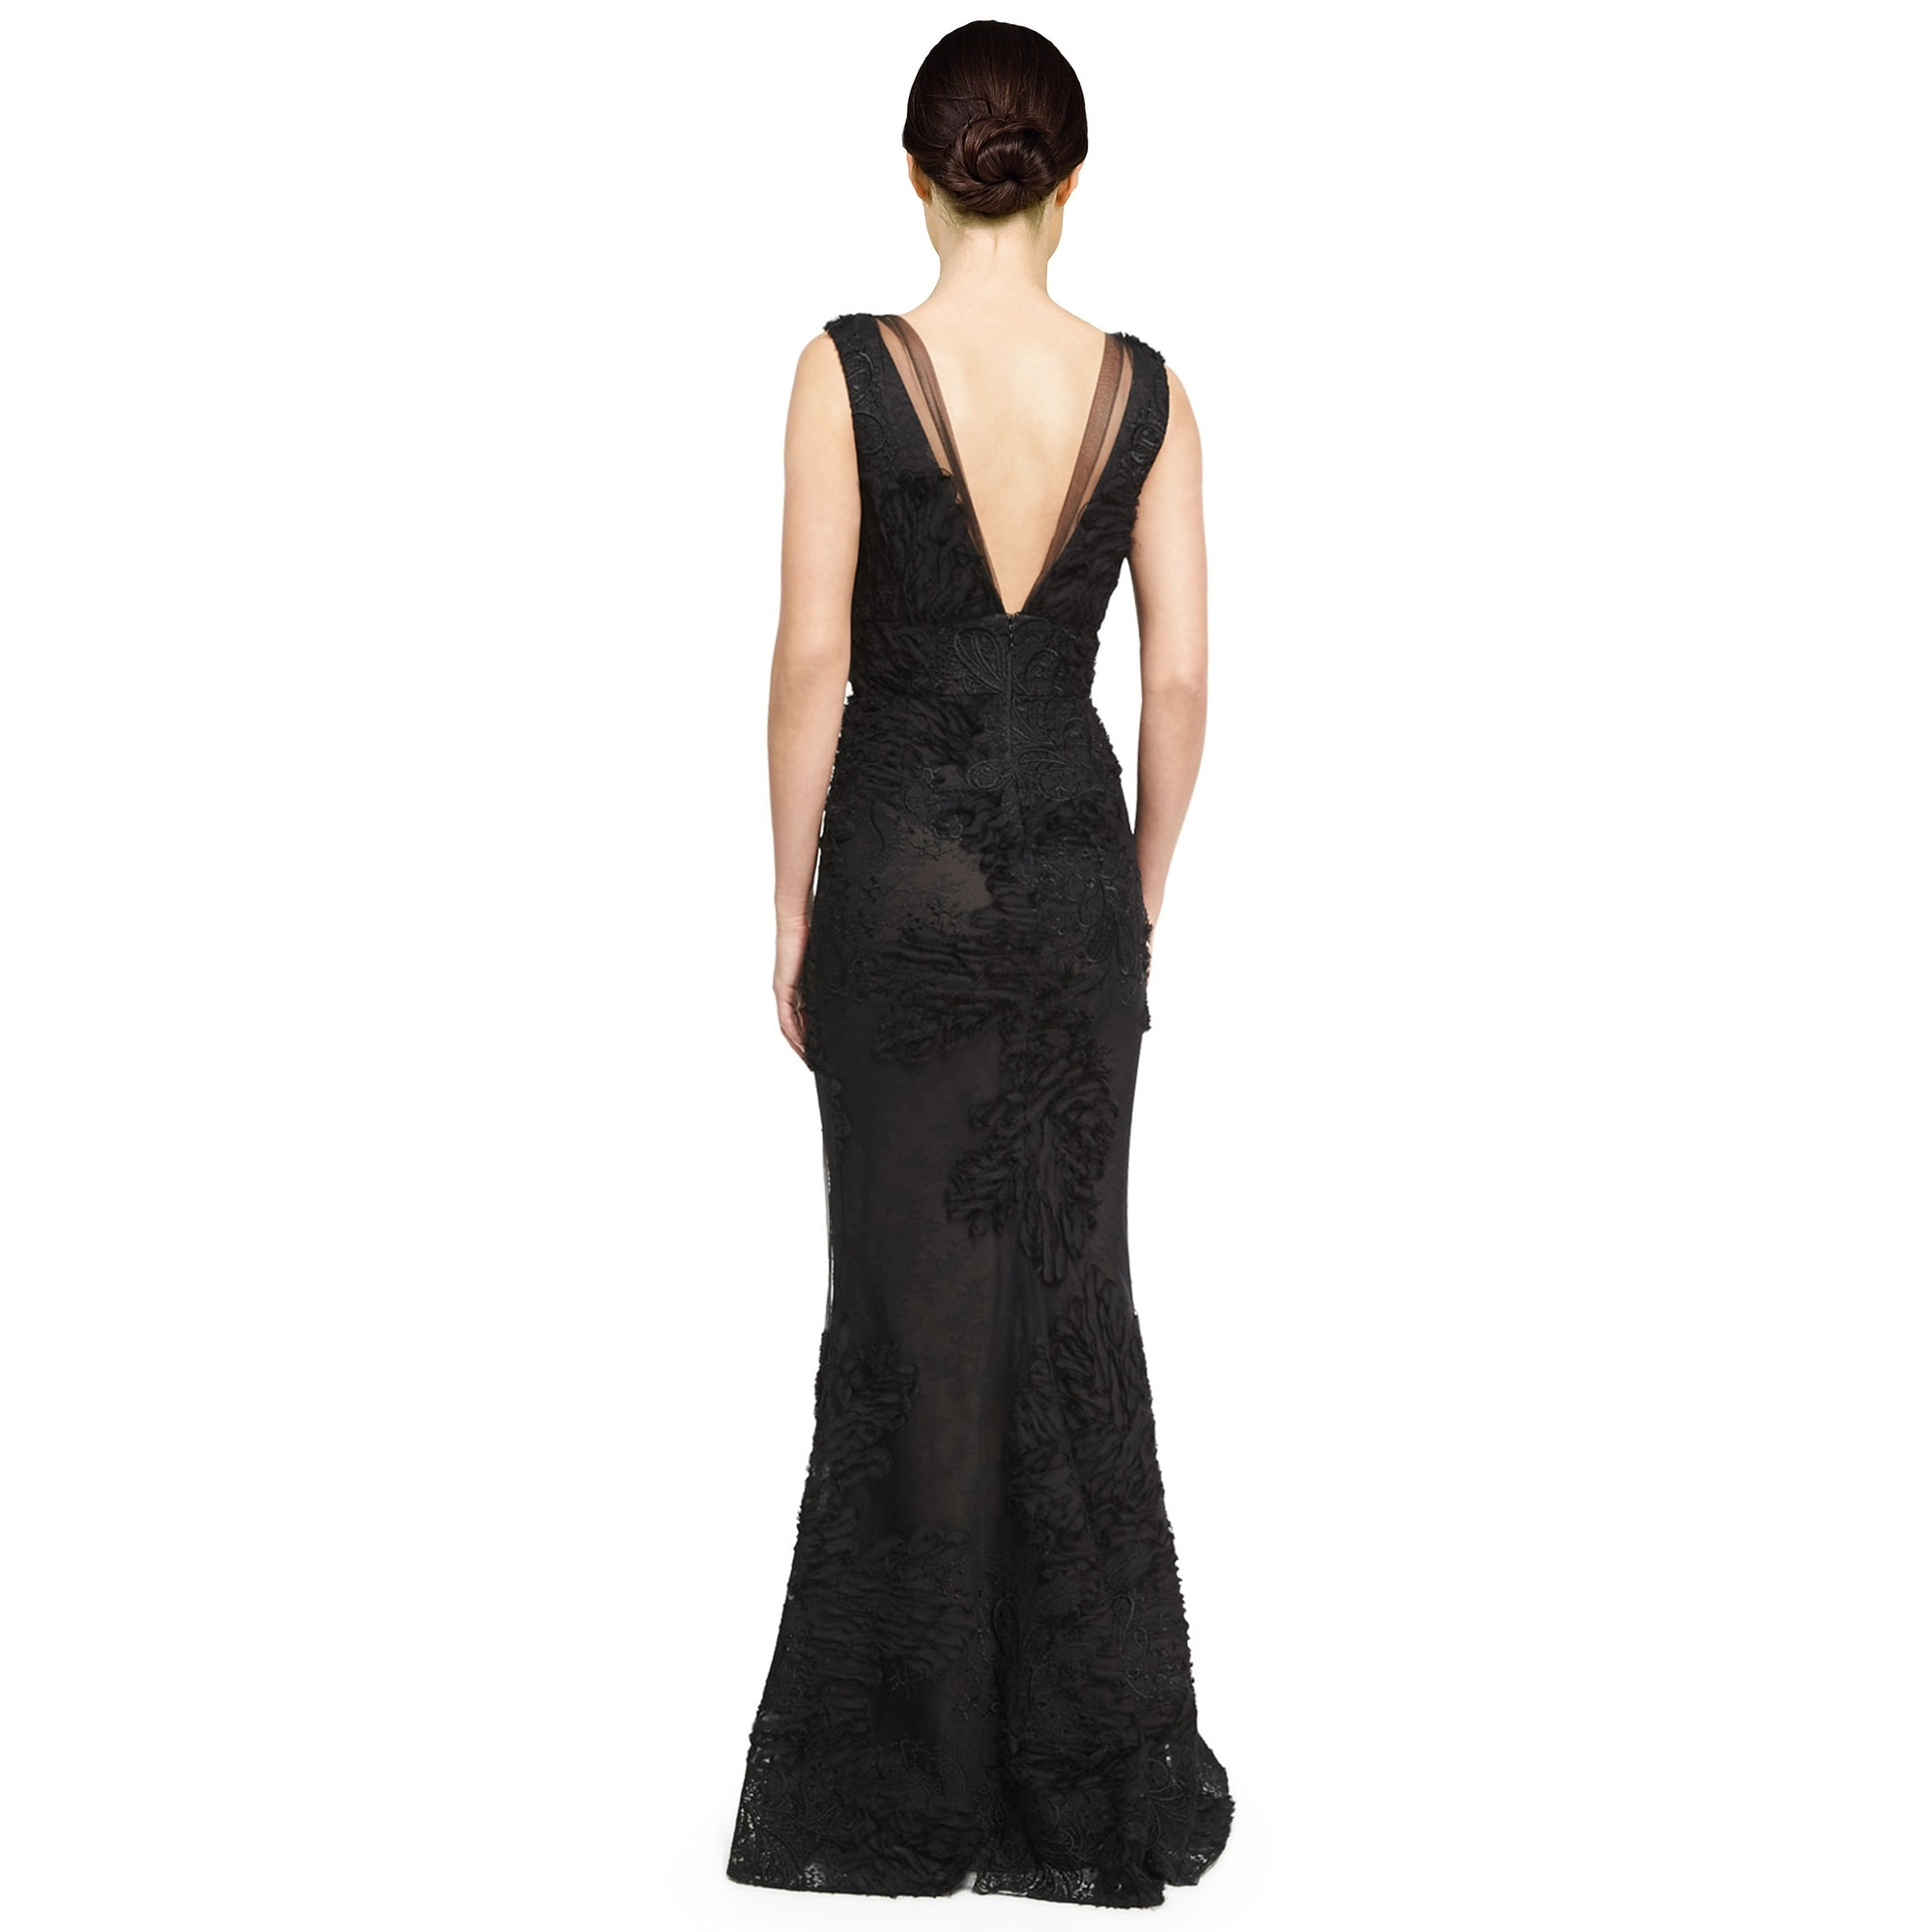 b76d0d958312 Shop Marchesa Notte Embroidered Tulle V-Neck Sleeveless Evening Gown Dress  - 8 - Free Shipping Today - Overstock - 18534745